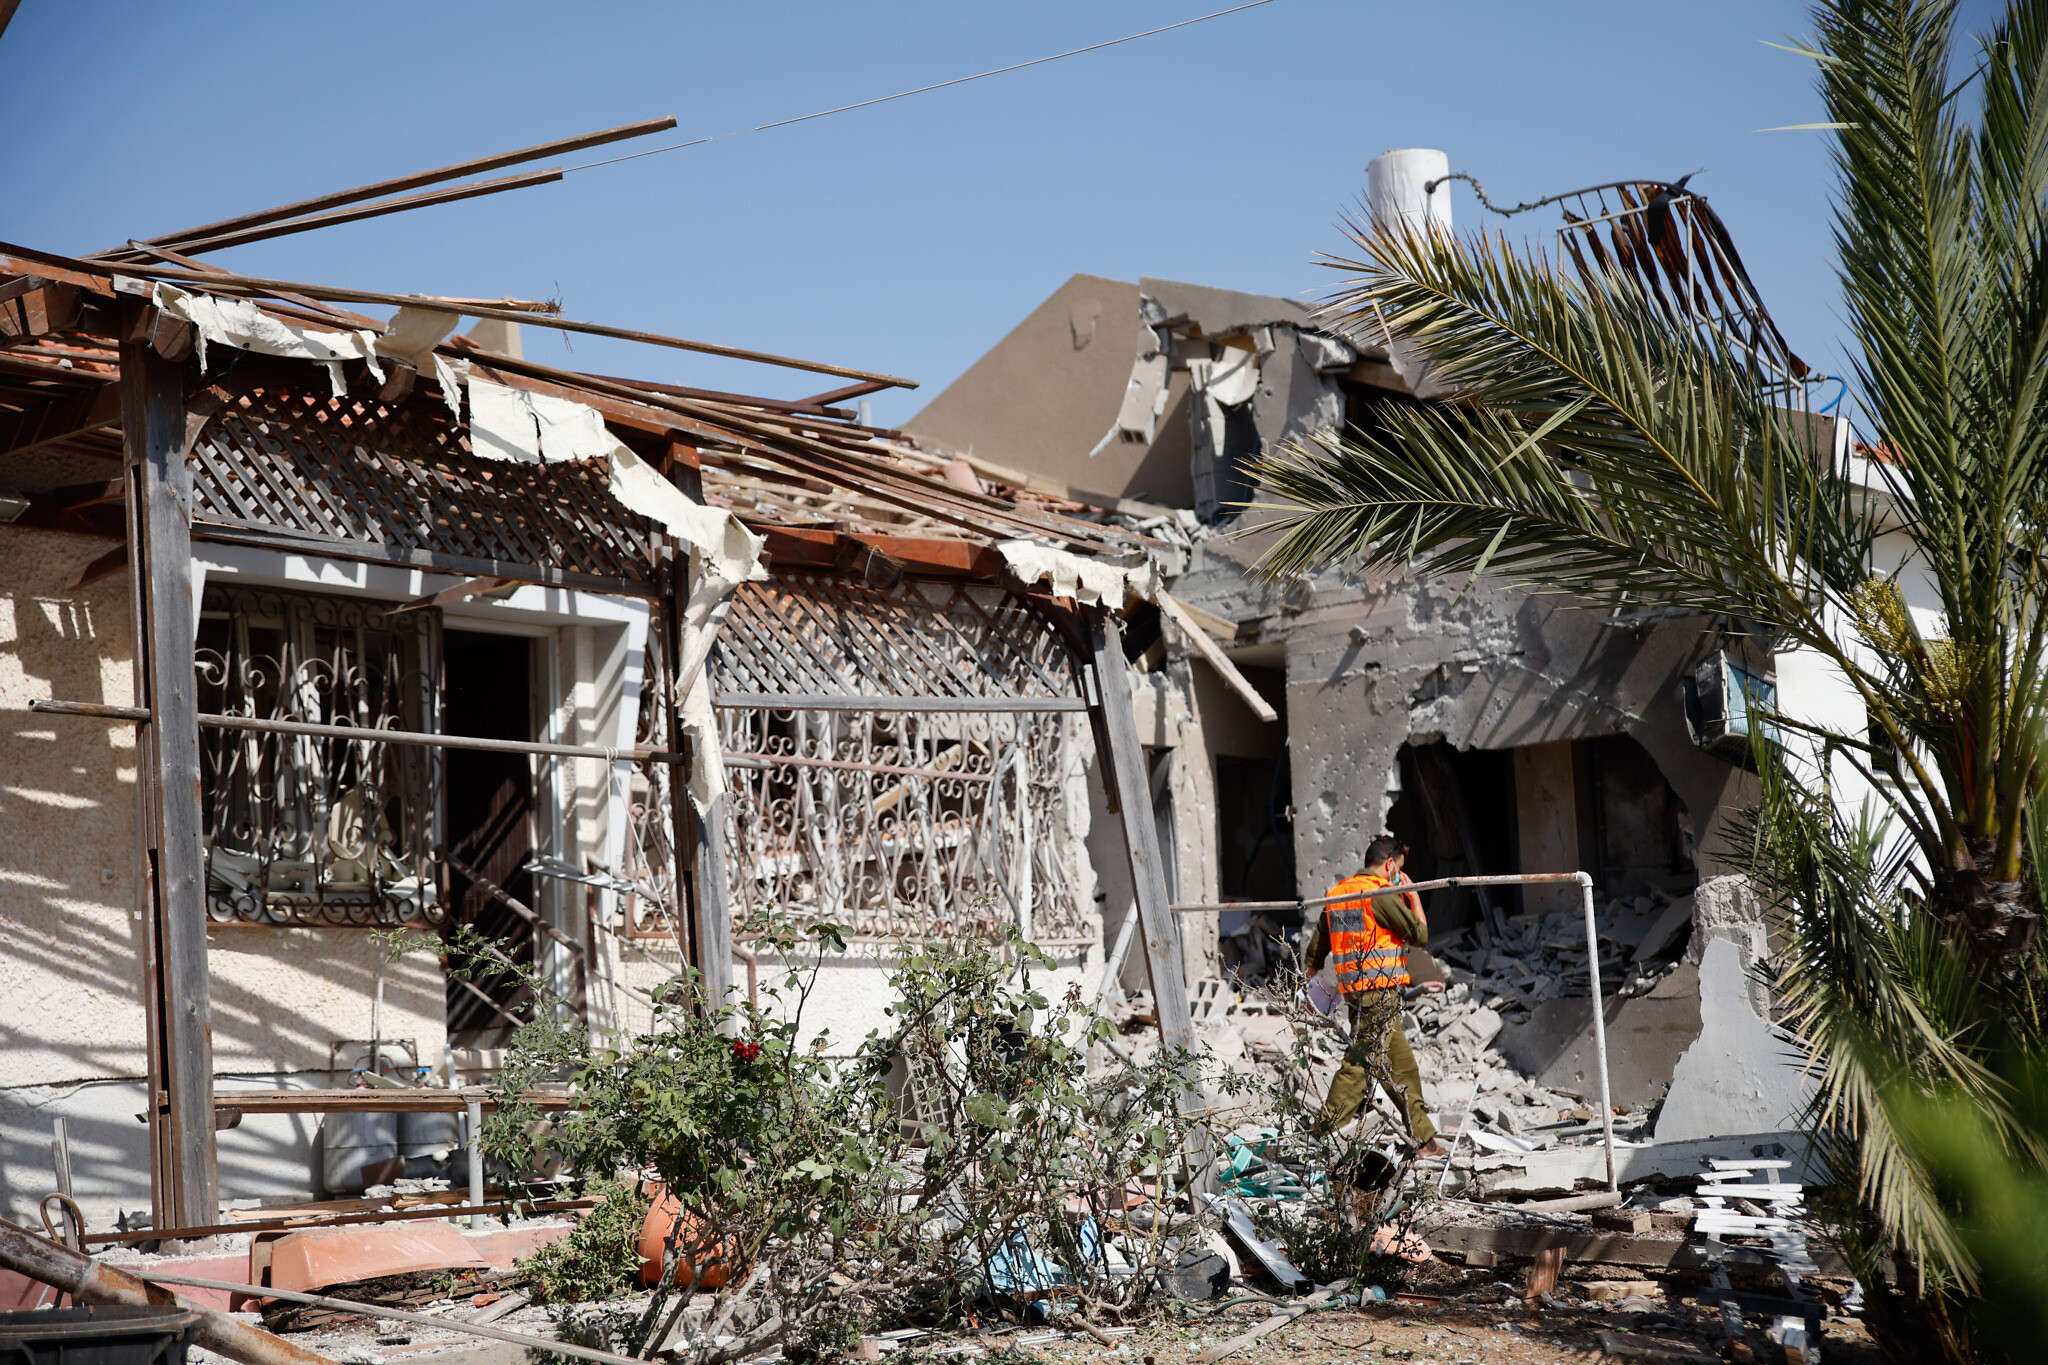 Israeli security forces at the scene where a rocket fired from the Gaza Strip hit a house in the southern Israeli city of Ashkelon